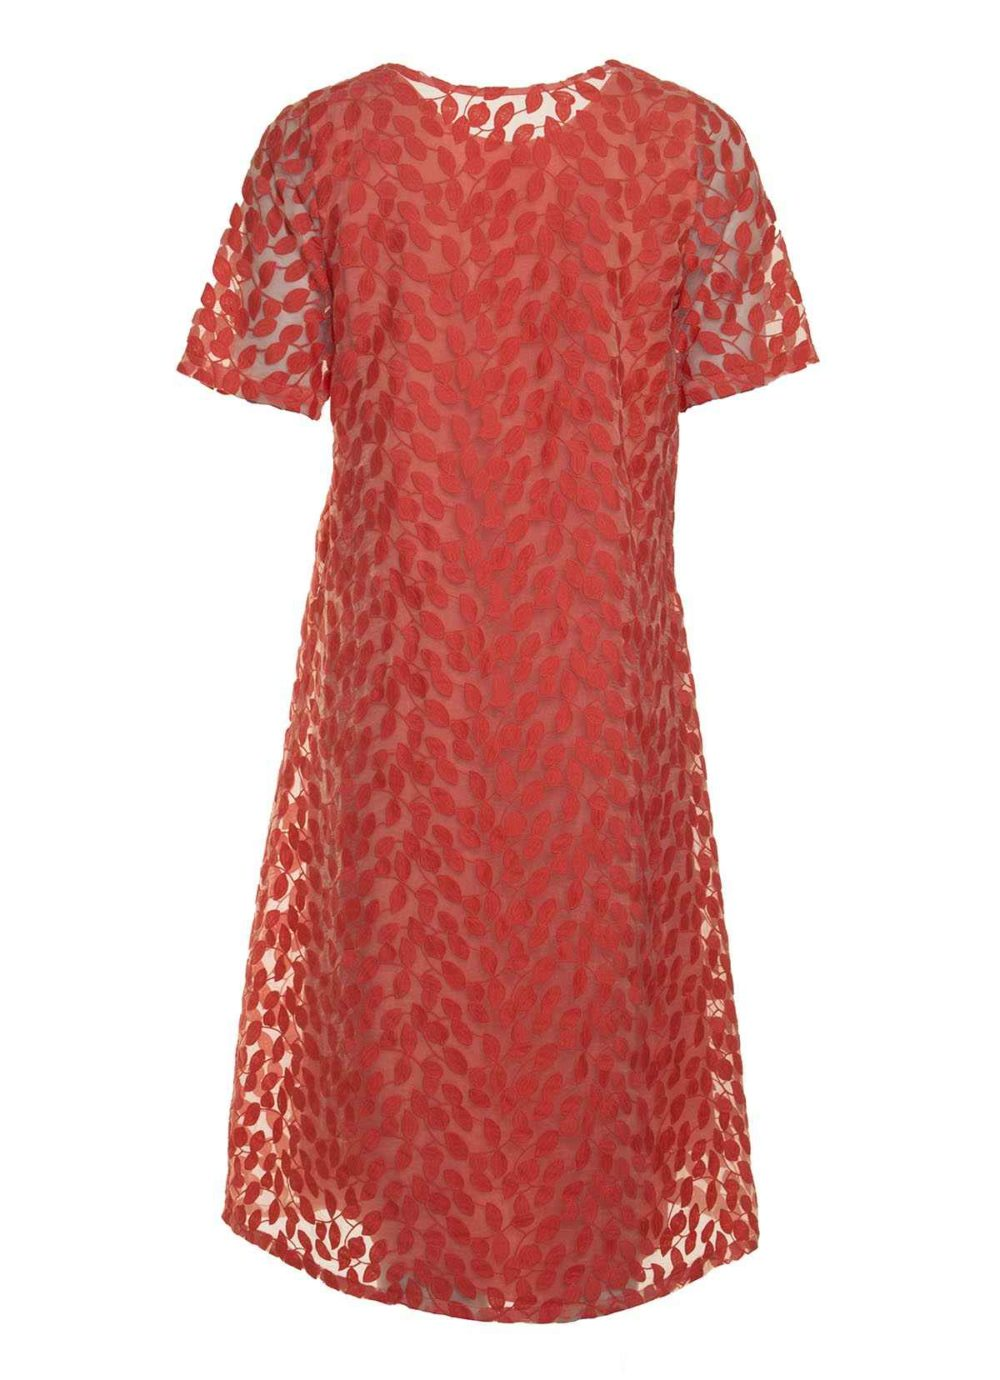 Leaf Embroidery Dress Out of Xile Katie Kerr Women's Clothing